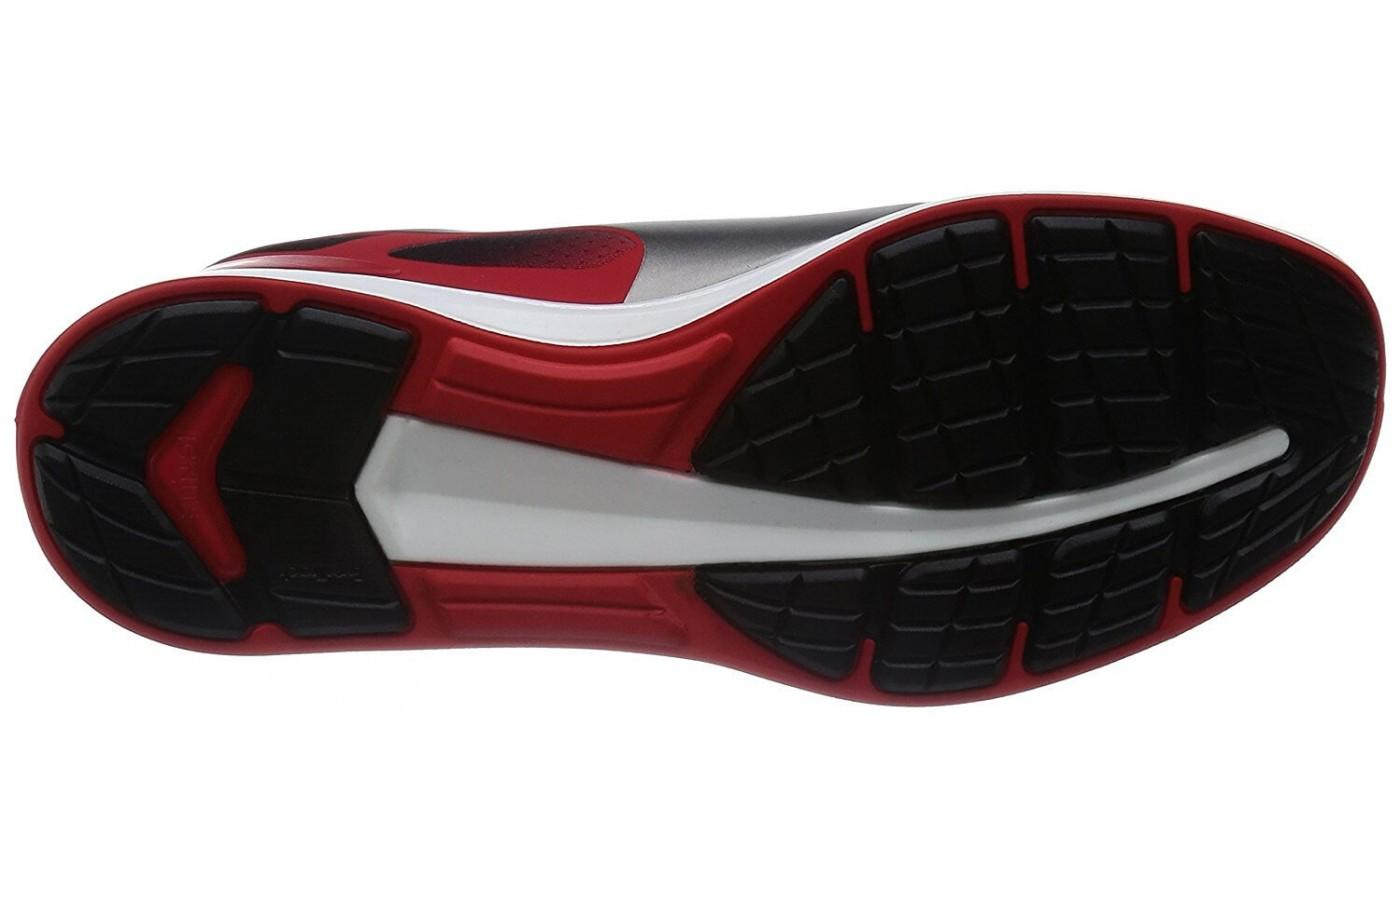 Puma Ignite durable rubber outsole